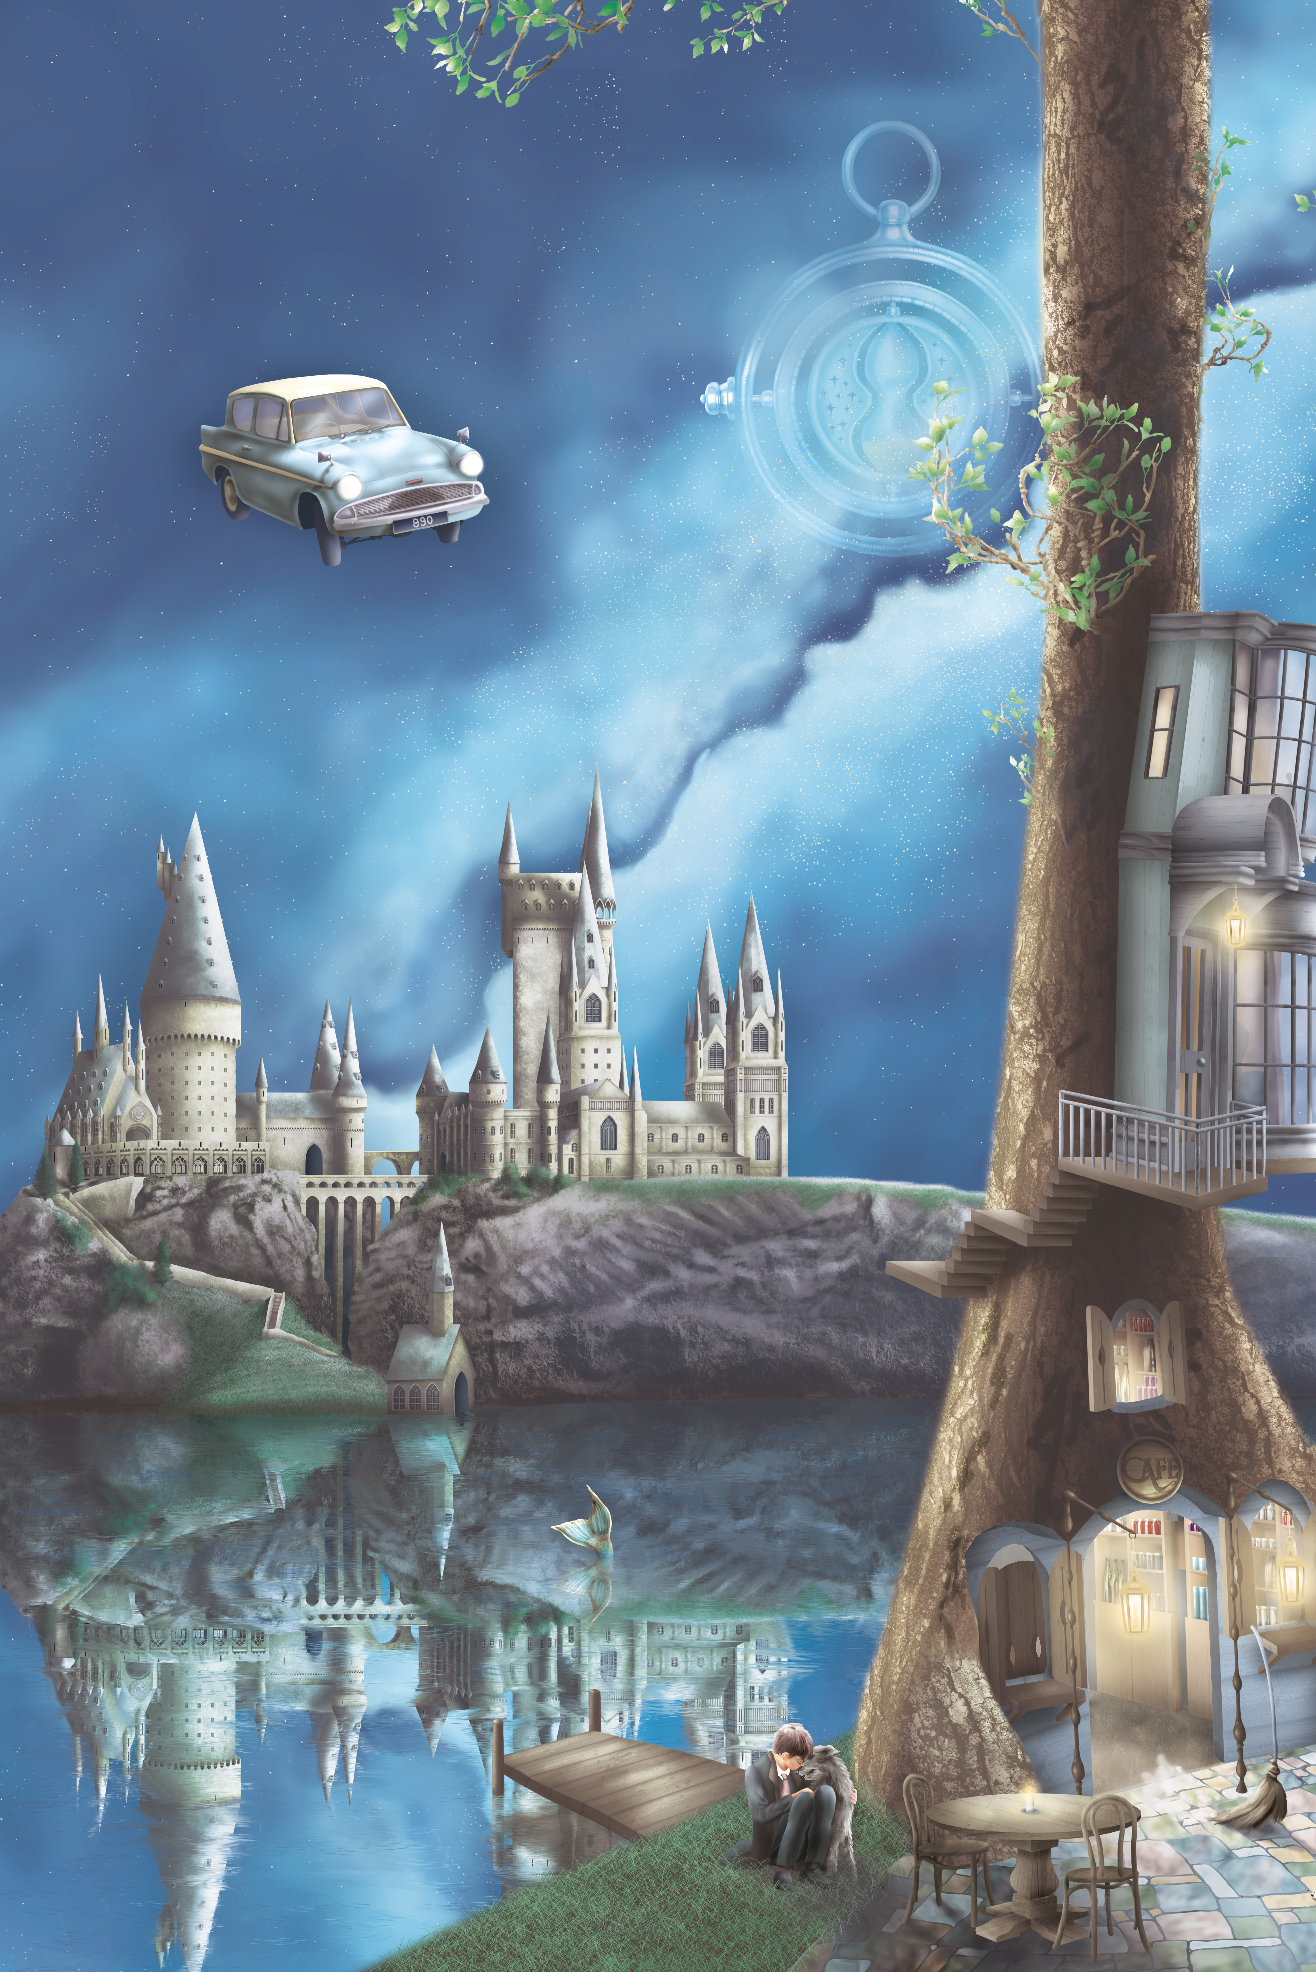 Harry Potter Boys Nursery Wallpaper Murals. Flying car, hogwarts castle, time turner, lake, and many more harry potter inspired illustrations from the wallpaper.